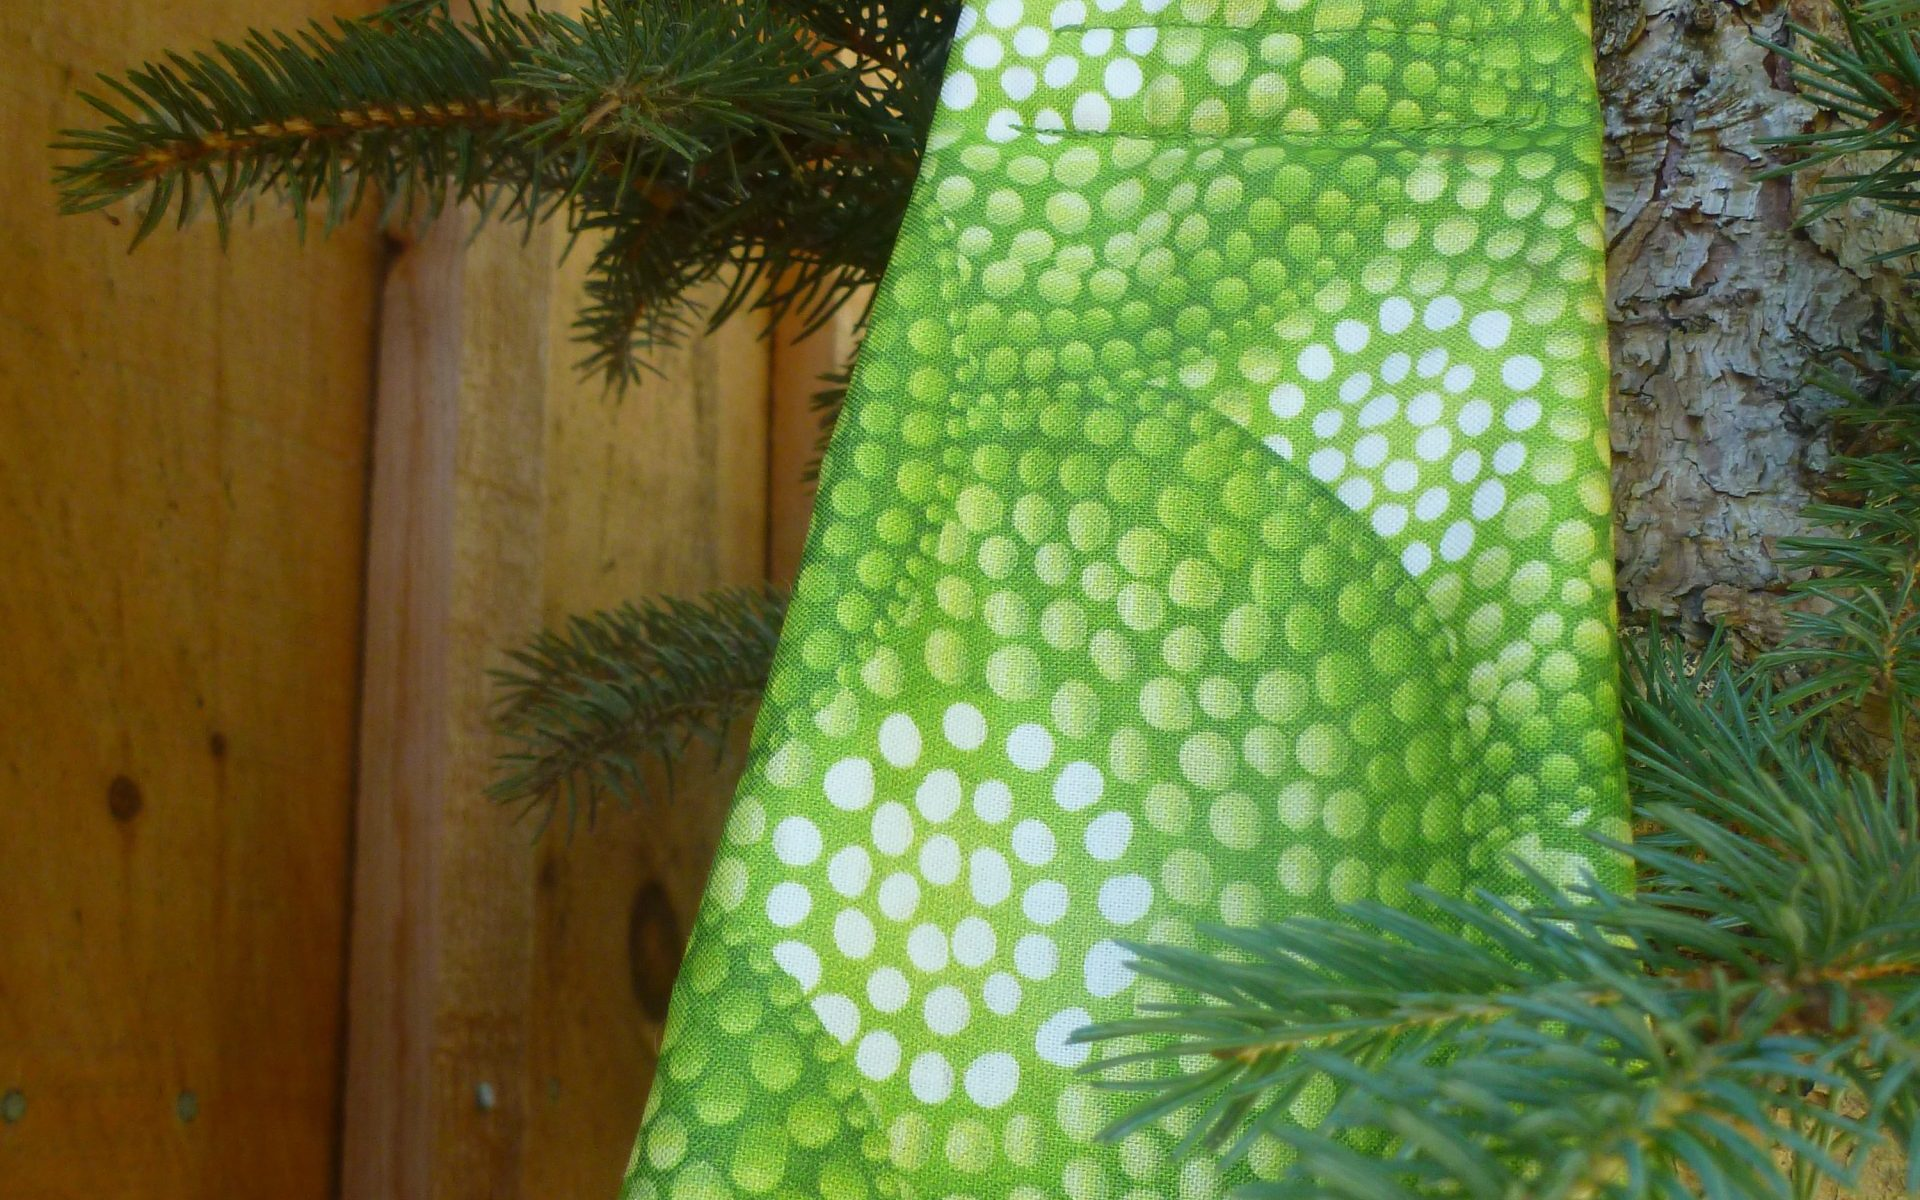 midwifery weigh sling made from spring-like shades of green in a circular dot pattern.